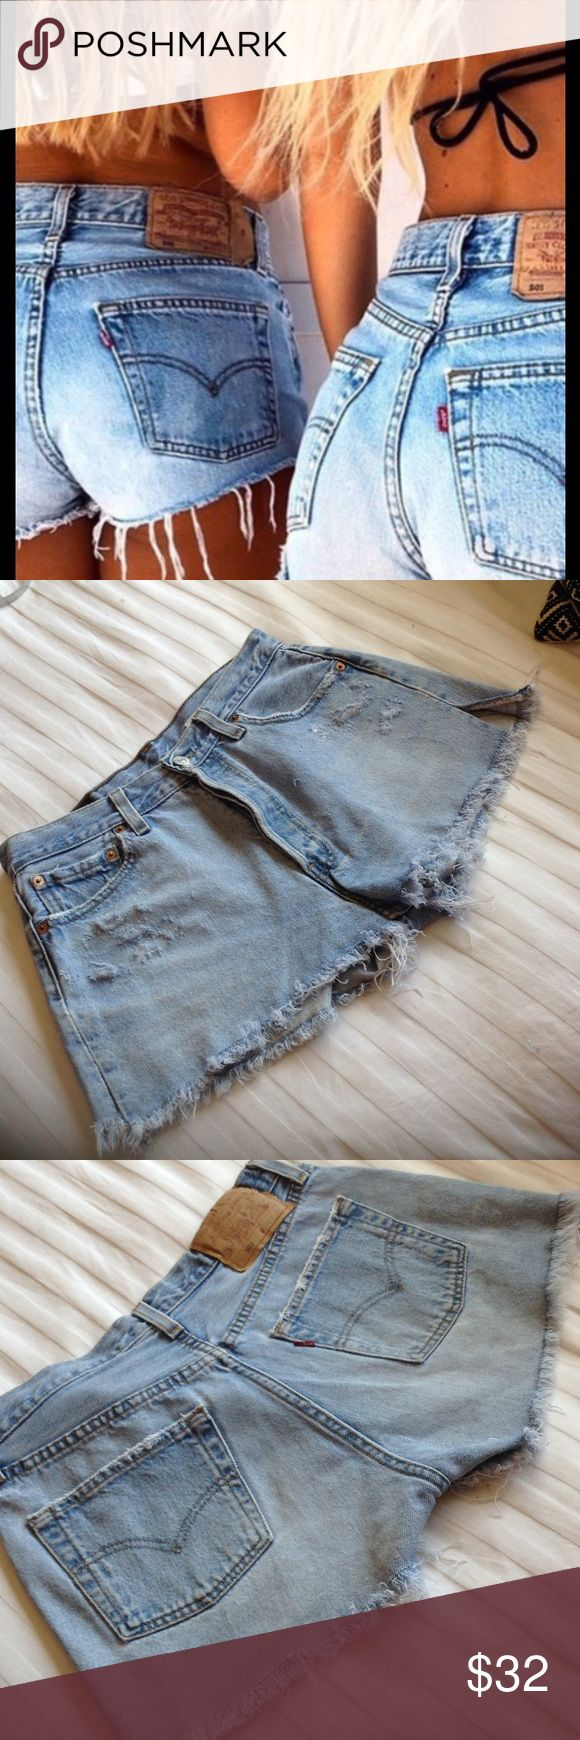 LEVI 501 VINTAGE HIGH WAISTED CUT OFFS 30 LEVI 501 BLUE JEAN CUTOFFS SOME DISTRESSED FRINGED, BUTTON DOWN VINTAGE 30 Levi's Shorts Jean Shorts